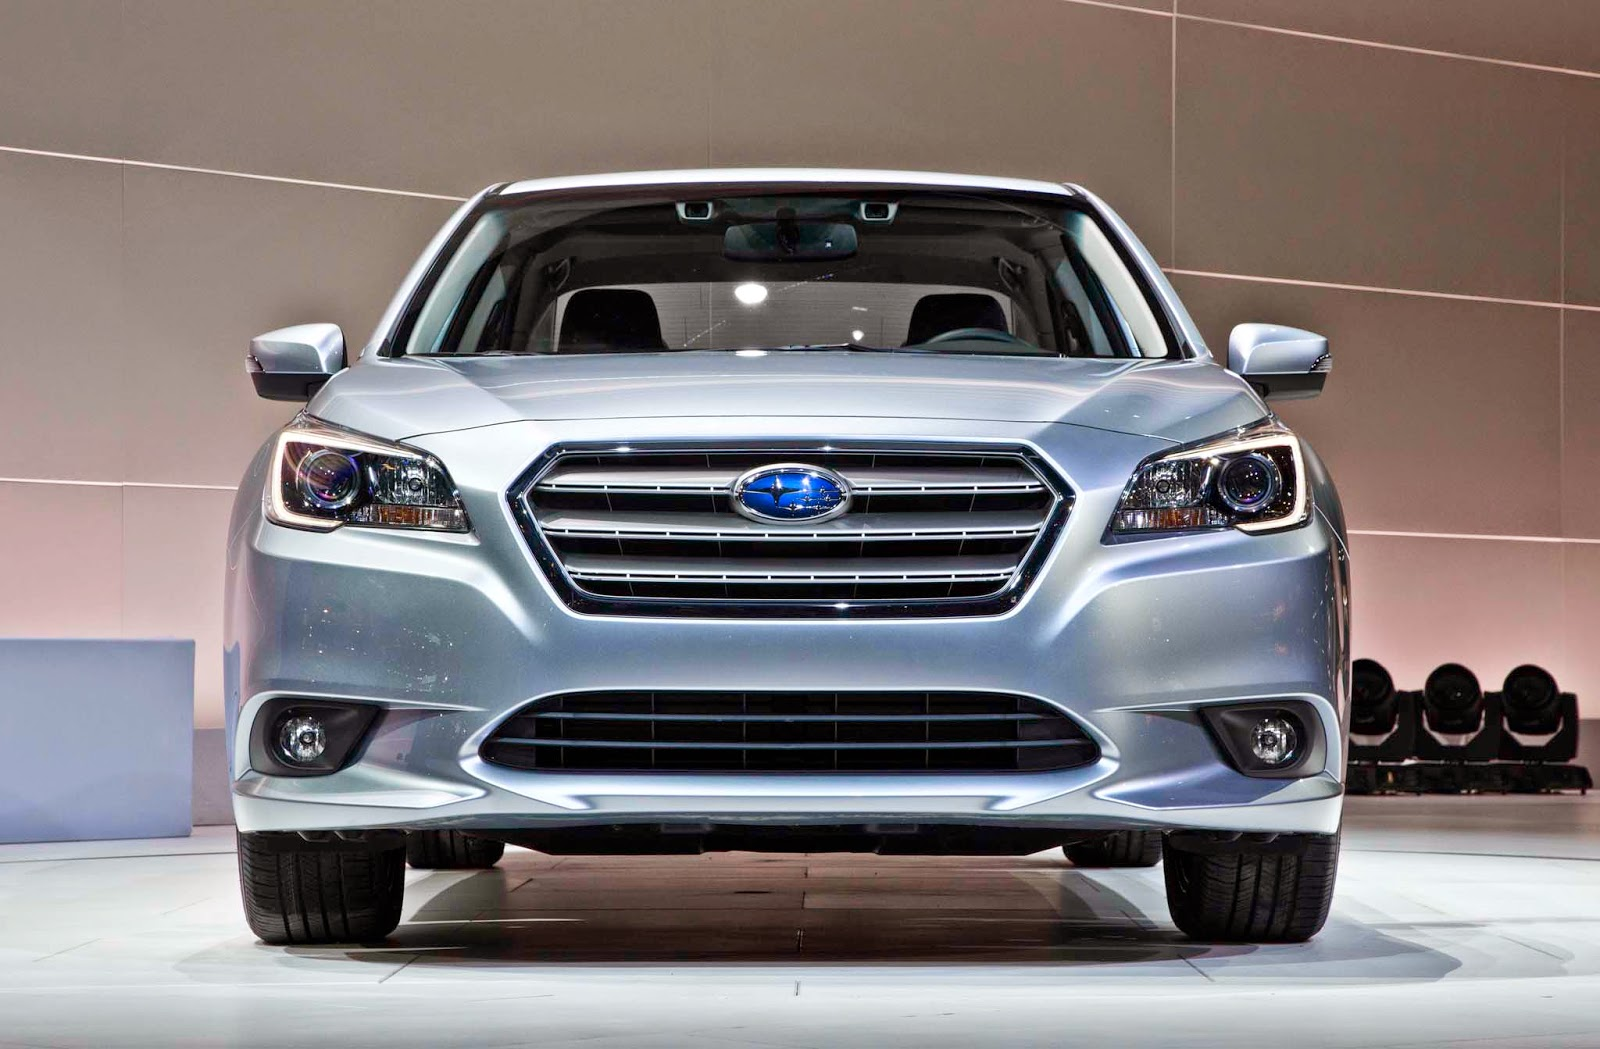 2015 Subaru Legacy Release Date, Price, Concept and Specs